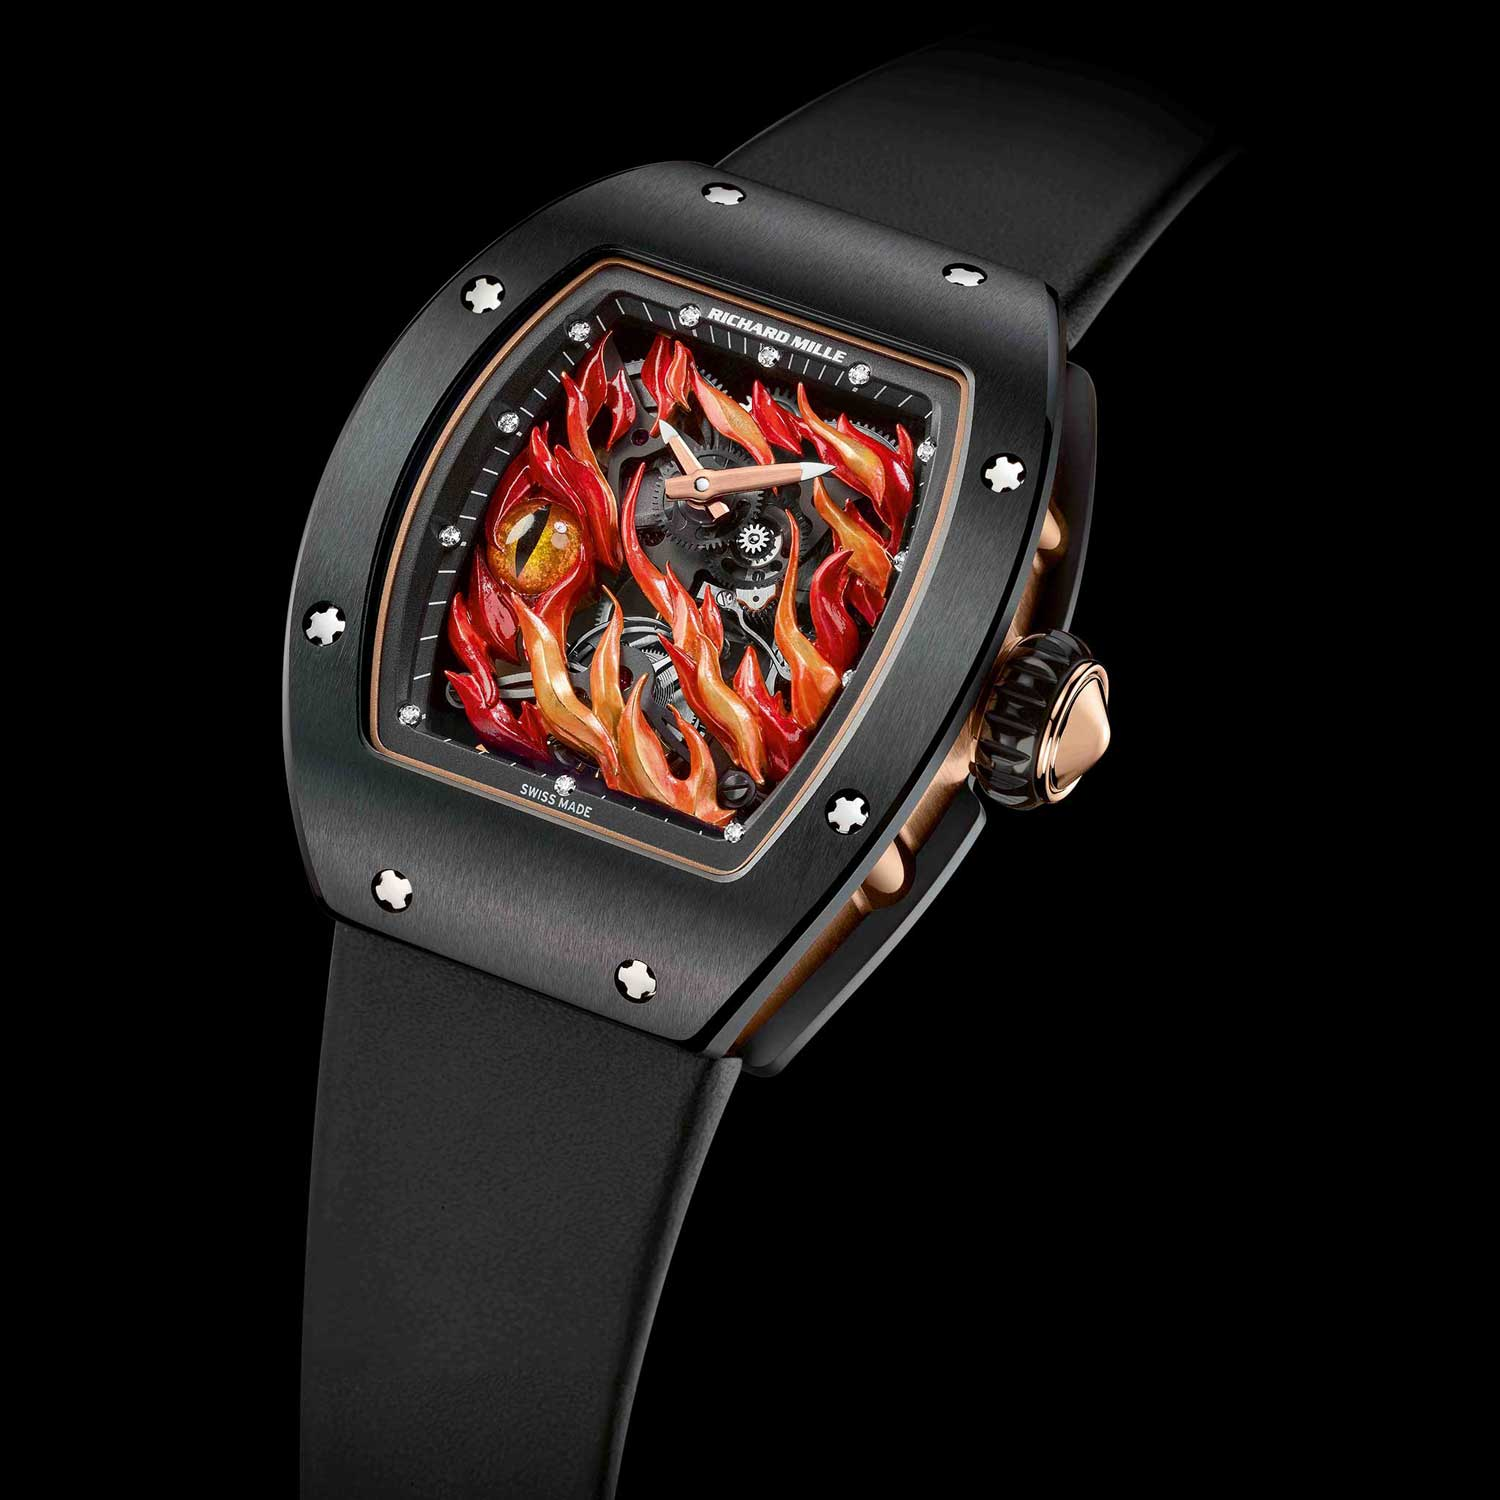 Richard Mille RM 26-02 Tourbillon Evil Eye